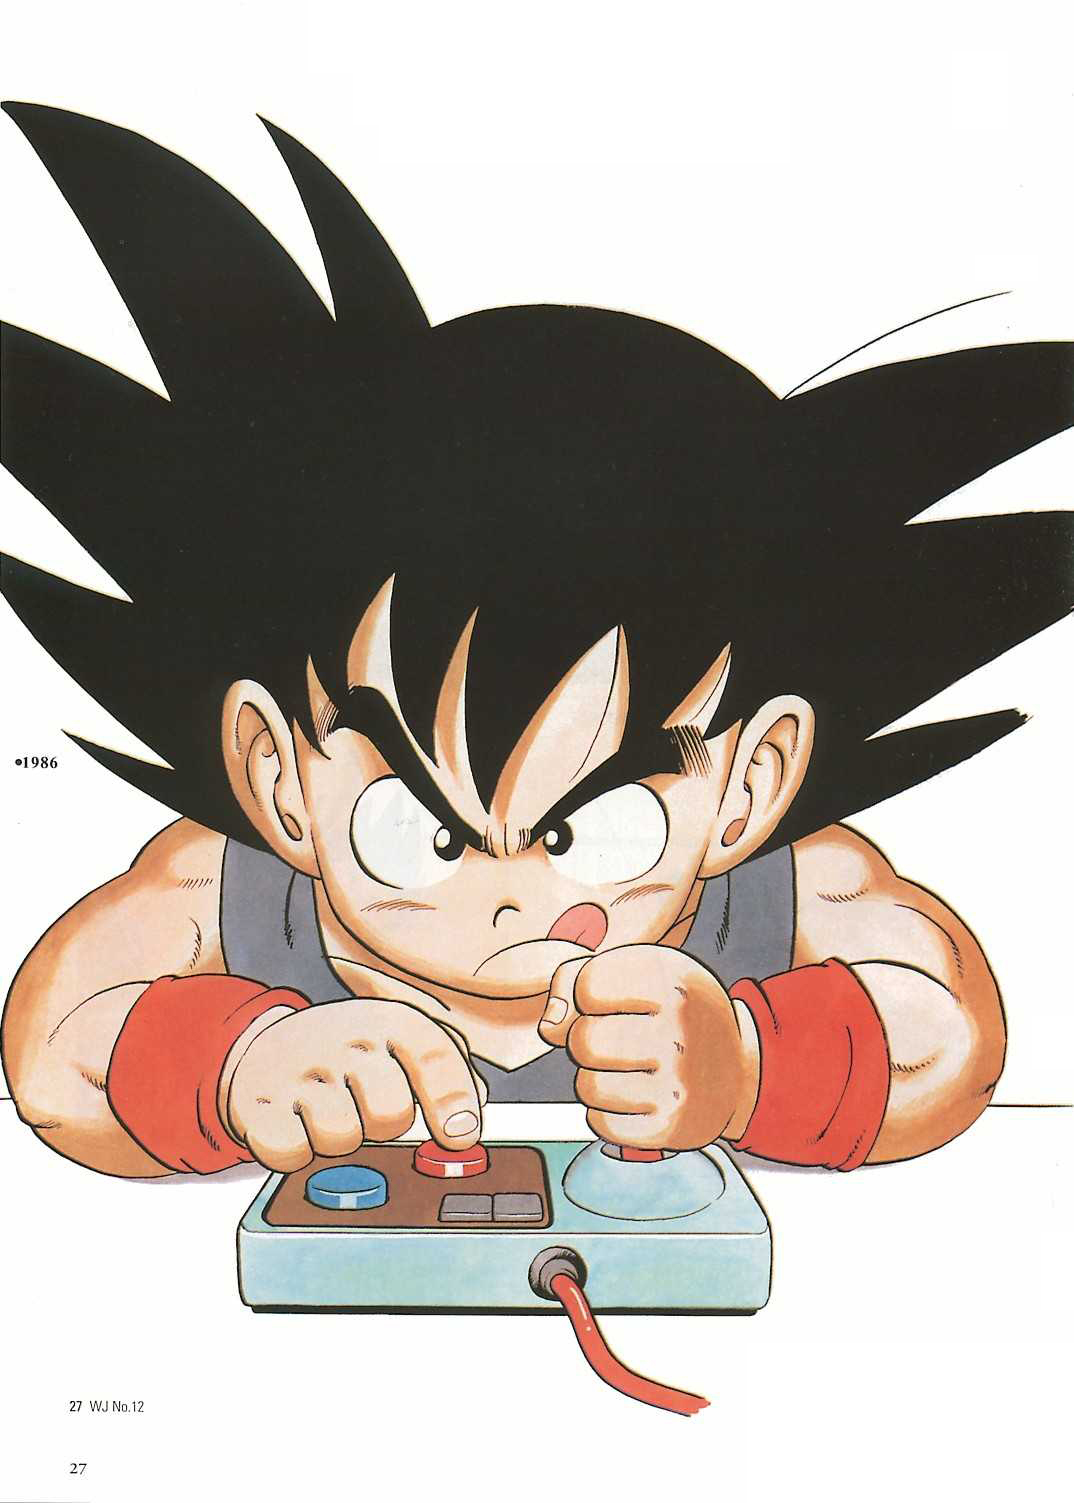 Playing Video Games PNG - 56243